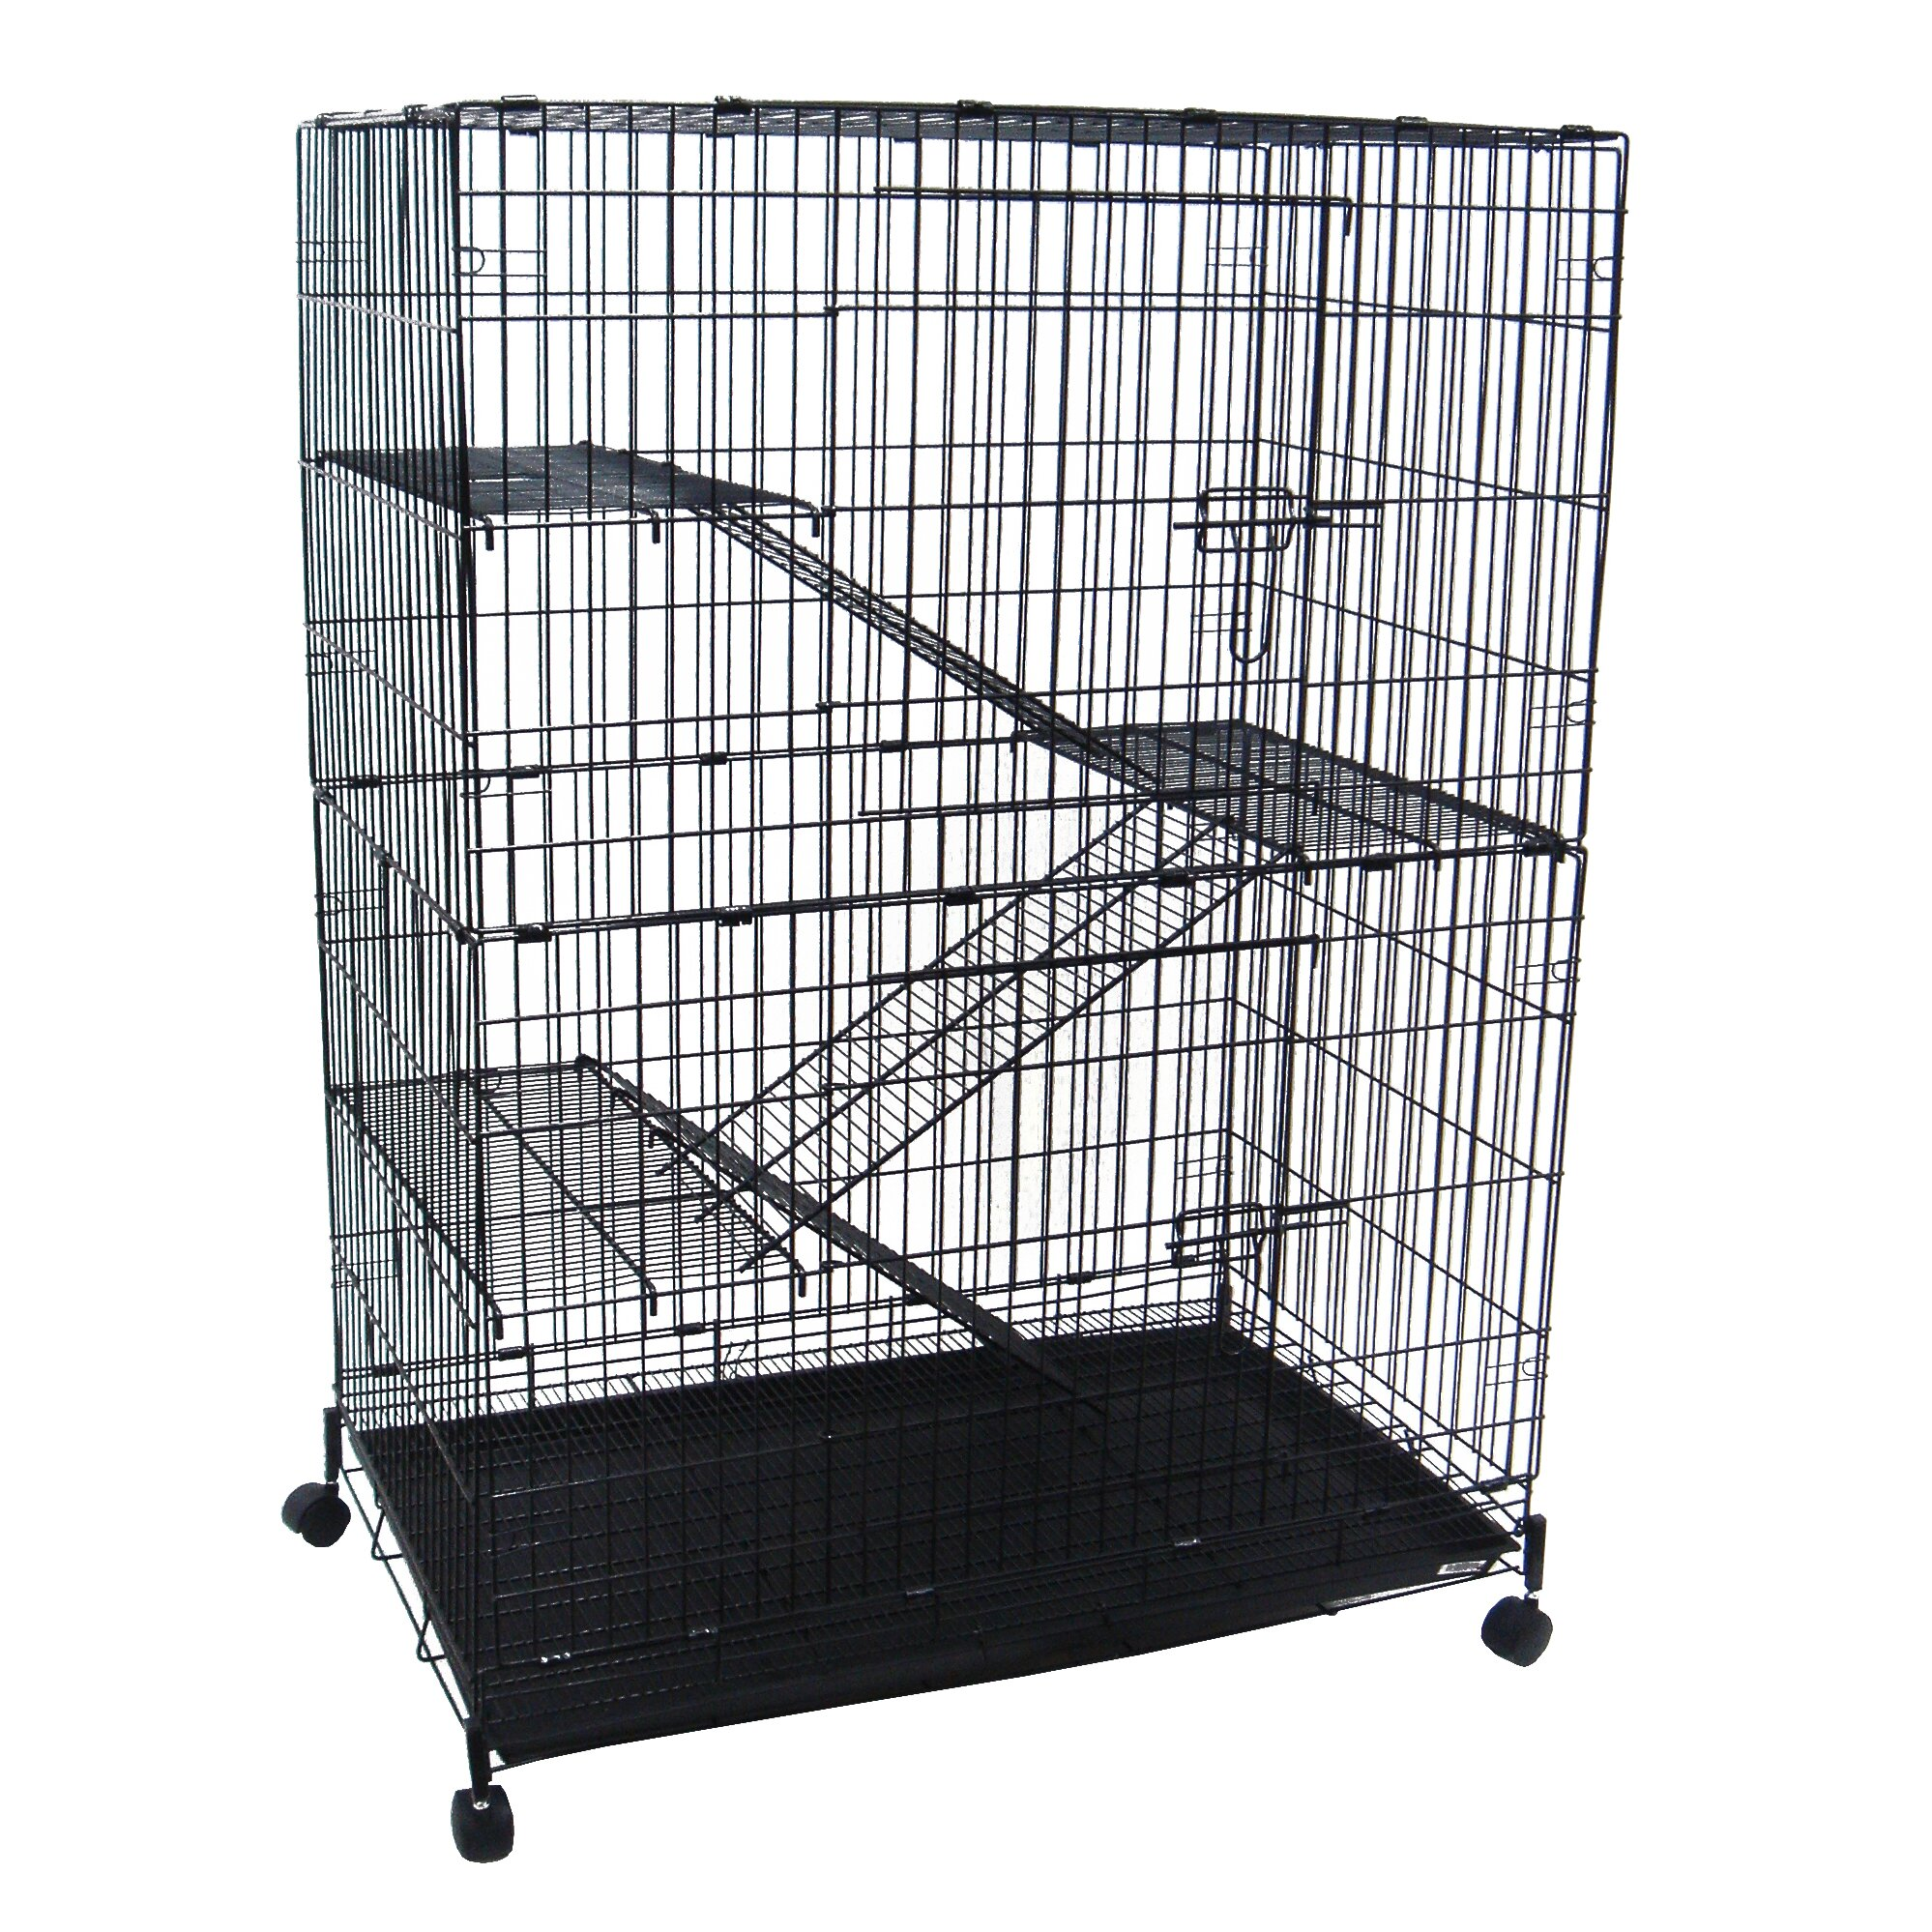 YML 4-Level Small Animal Cage & Reviews